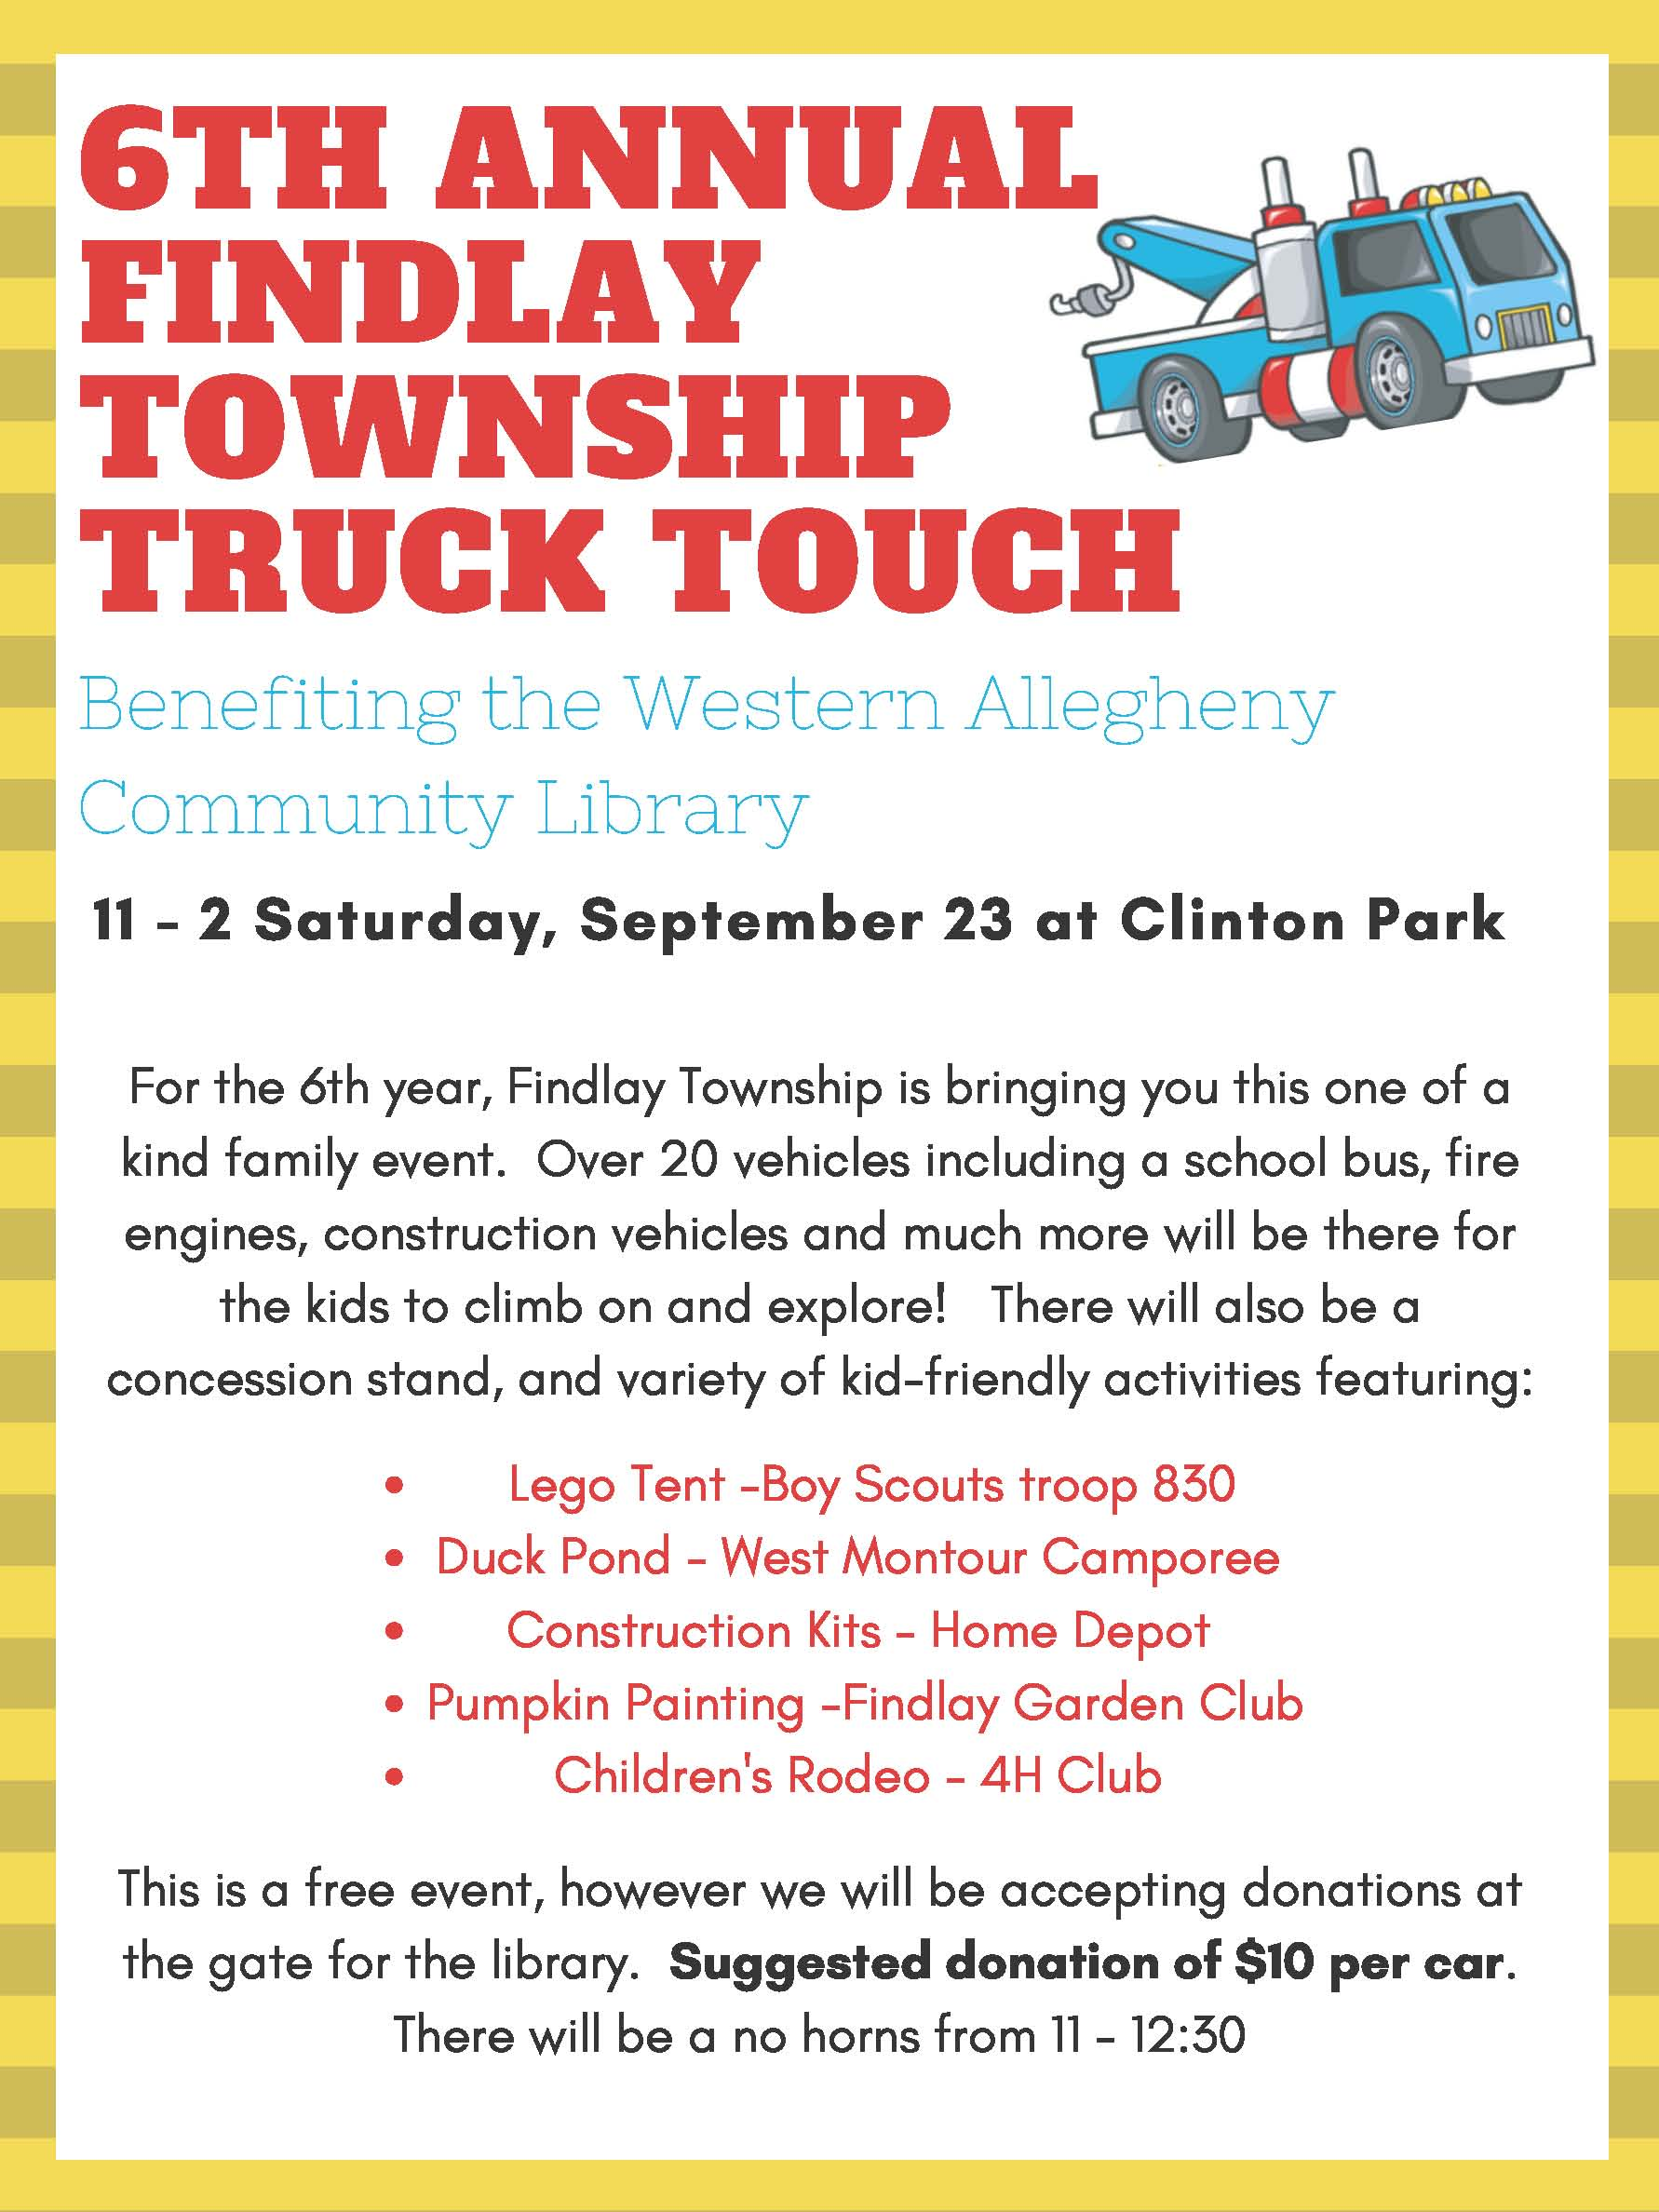 2017 Findlay Township Truck Touch